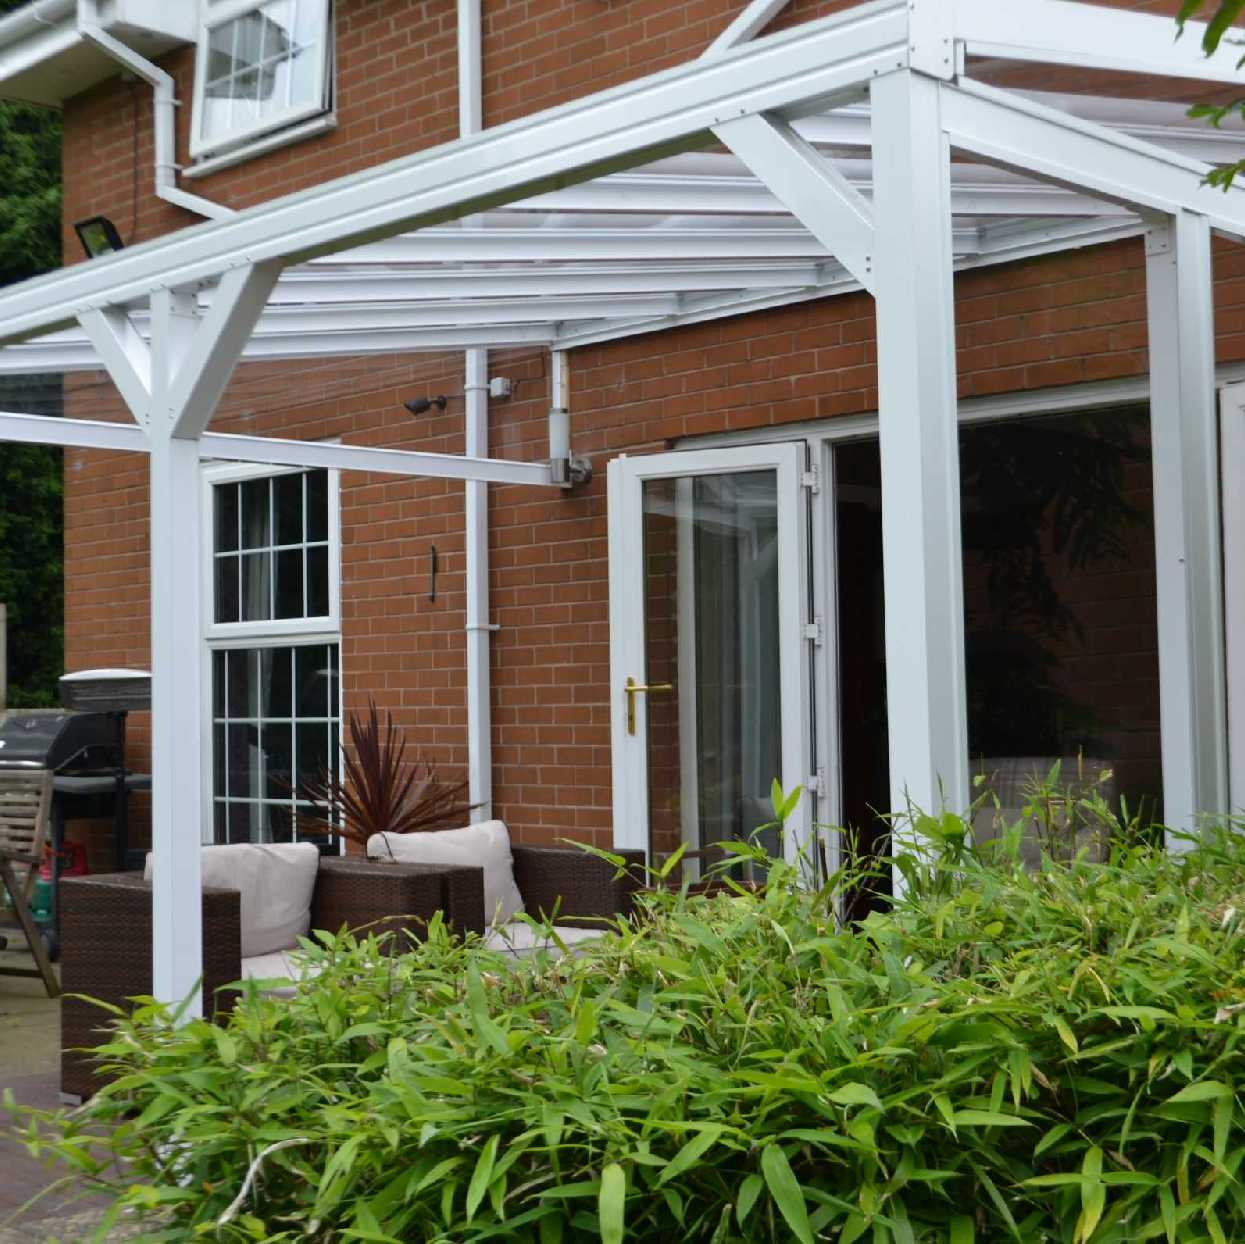 Omega Smart White Lean-To Canopy with 6mm Glass Clear Plate Polycarbonate Glazing - 8.4m (W) x 3.5m (P), (4) Supporting Posts from Omega Build